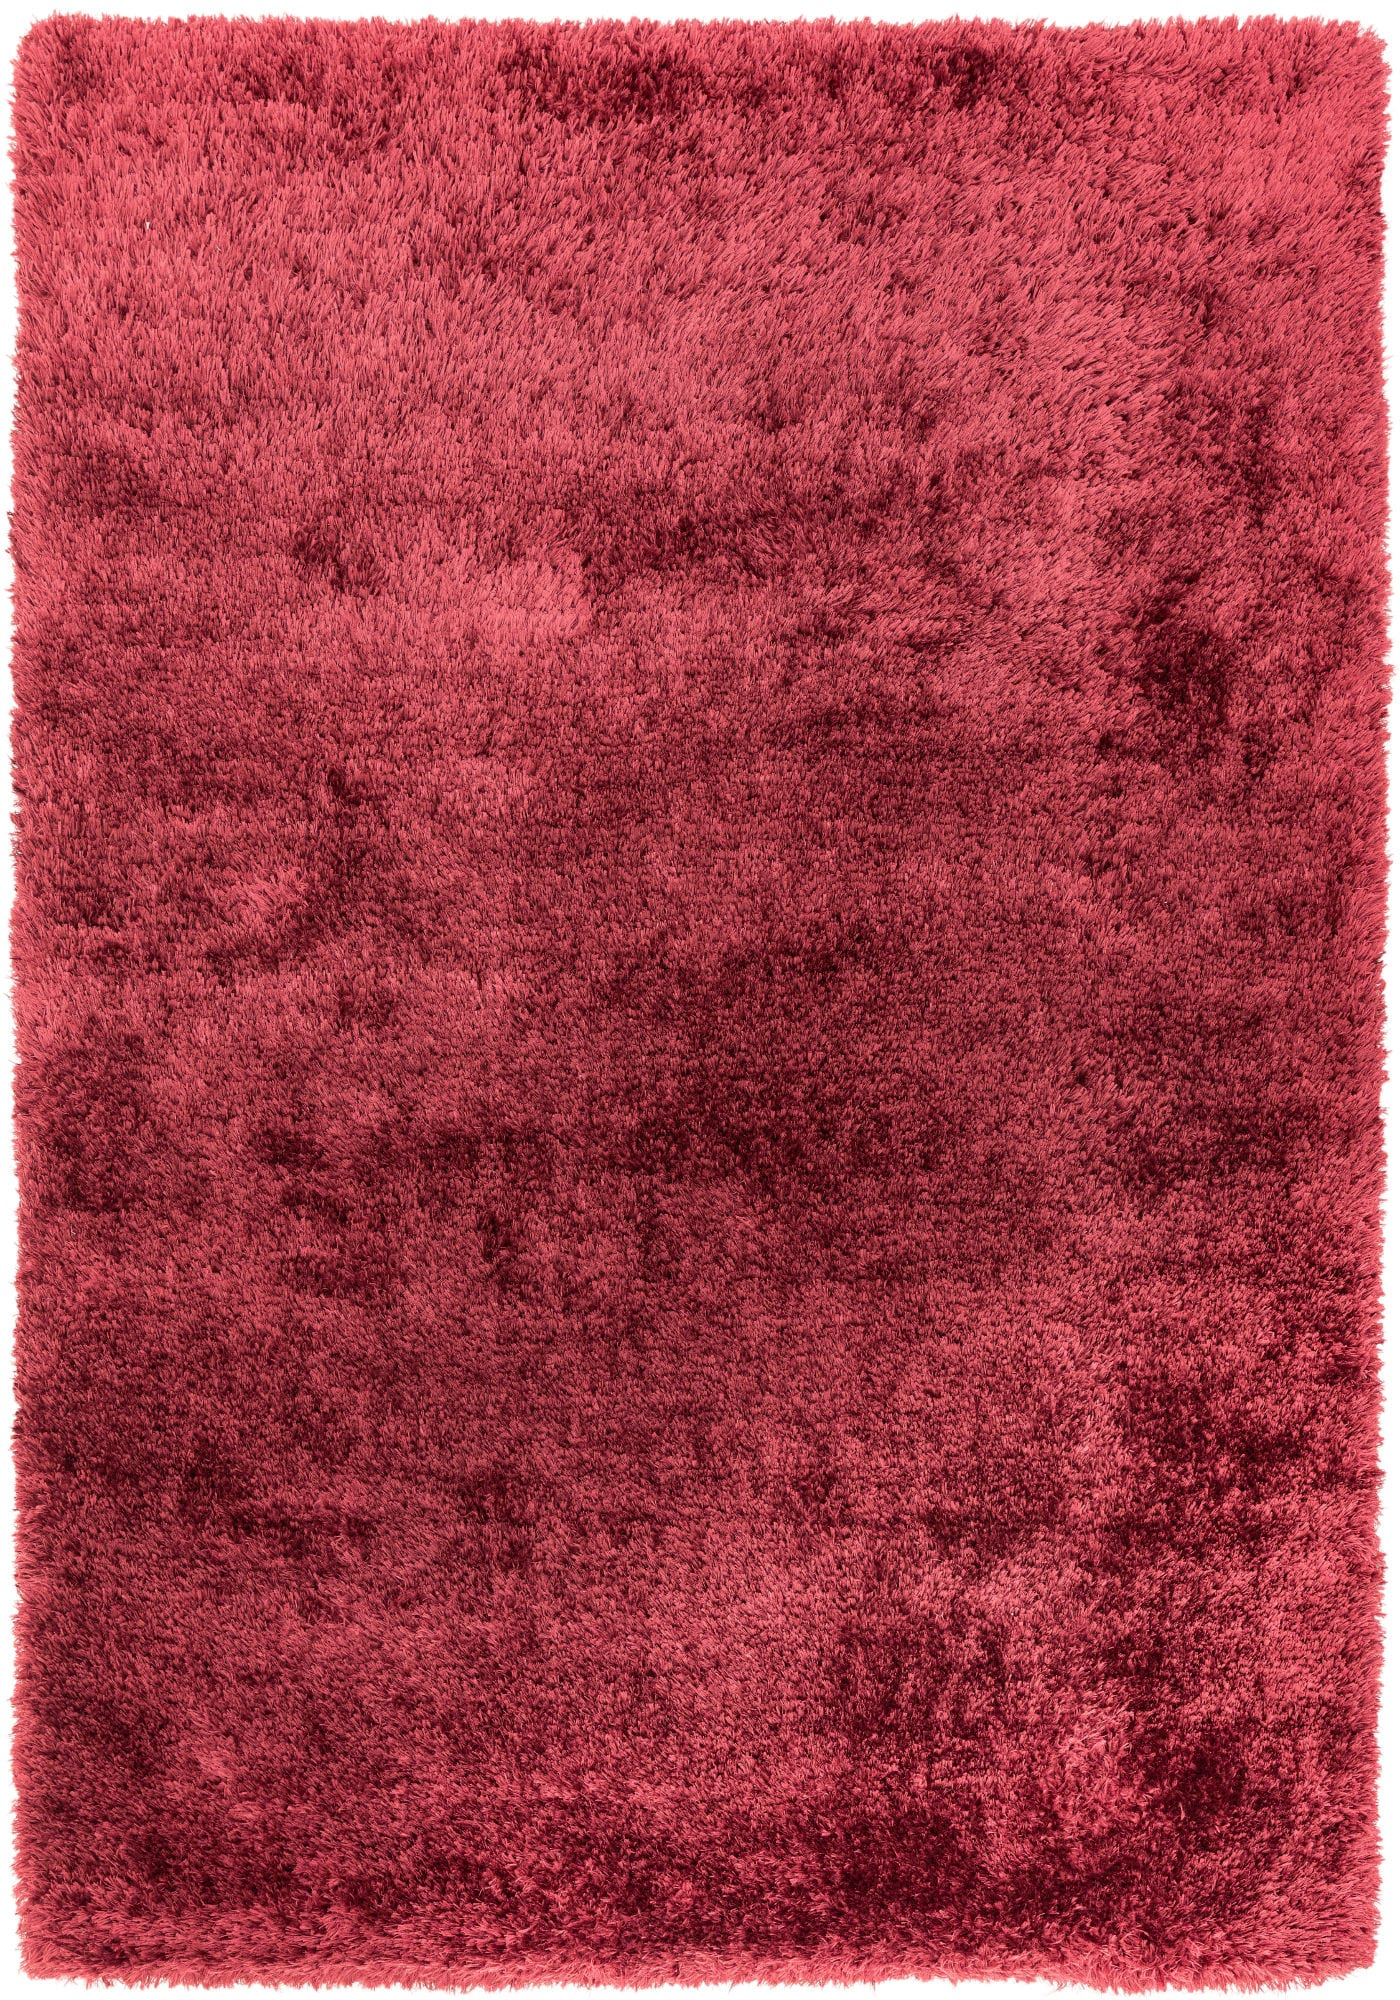 Nimbus Rug By Asiatic Carpets Colour Ruby Rugs Uk